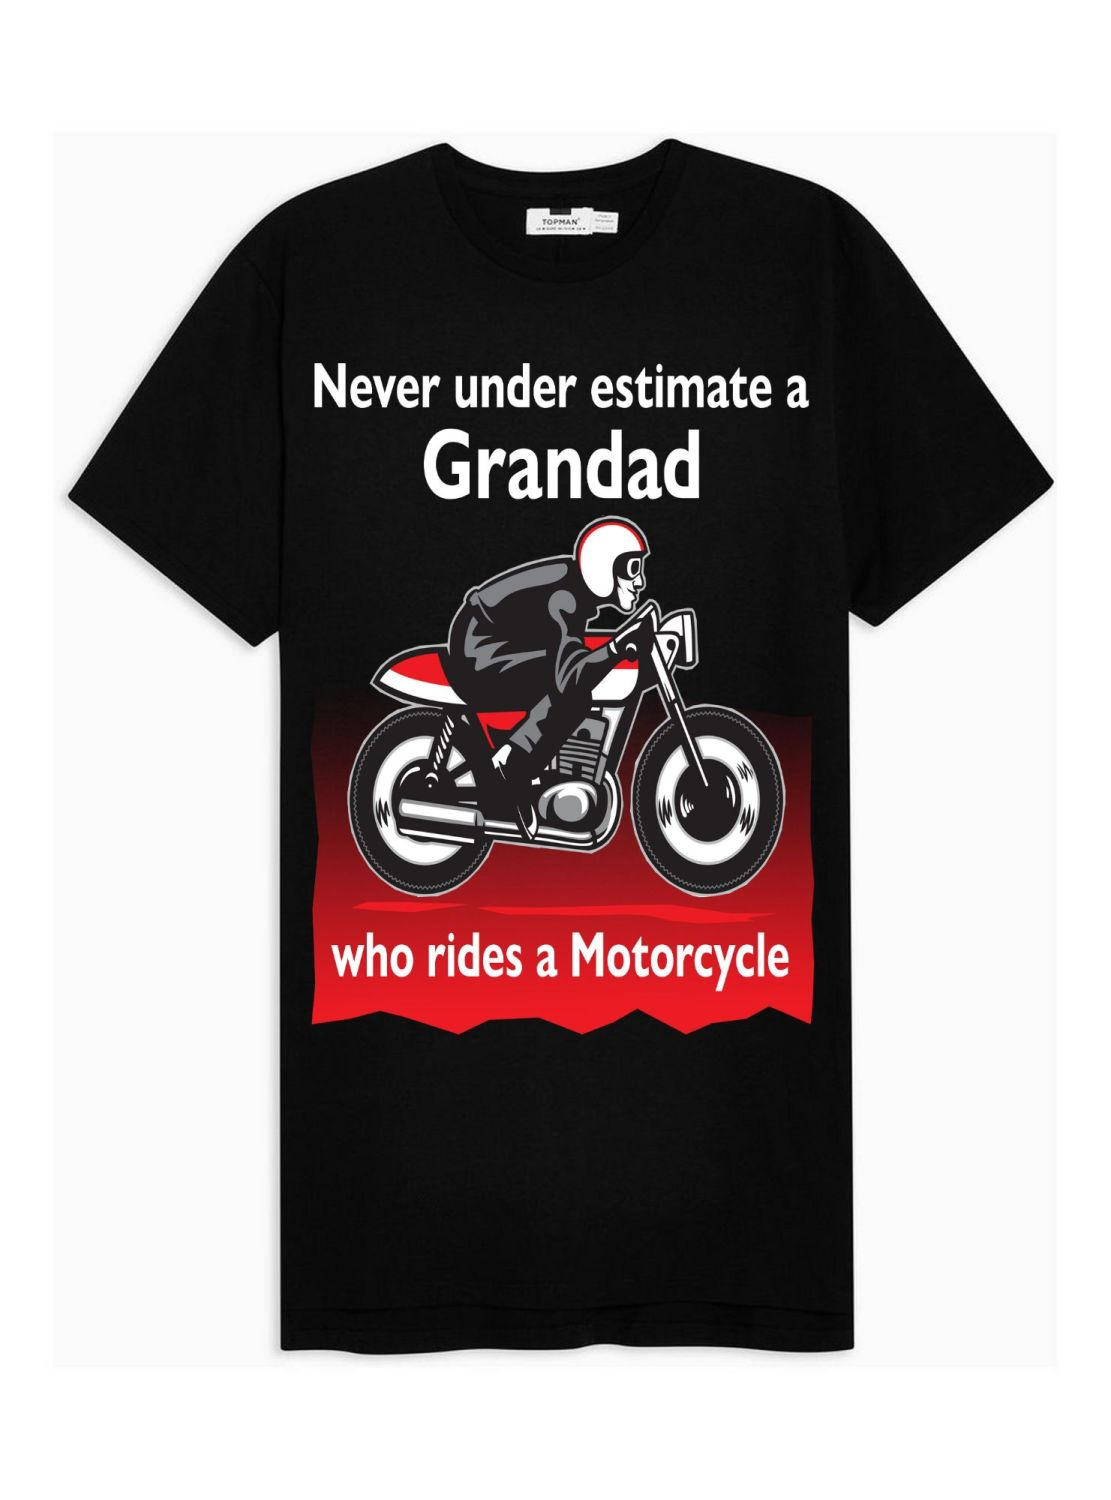 Never under estimate a Grandad who rides a motorcycle mens black tshirt t-s